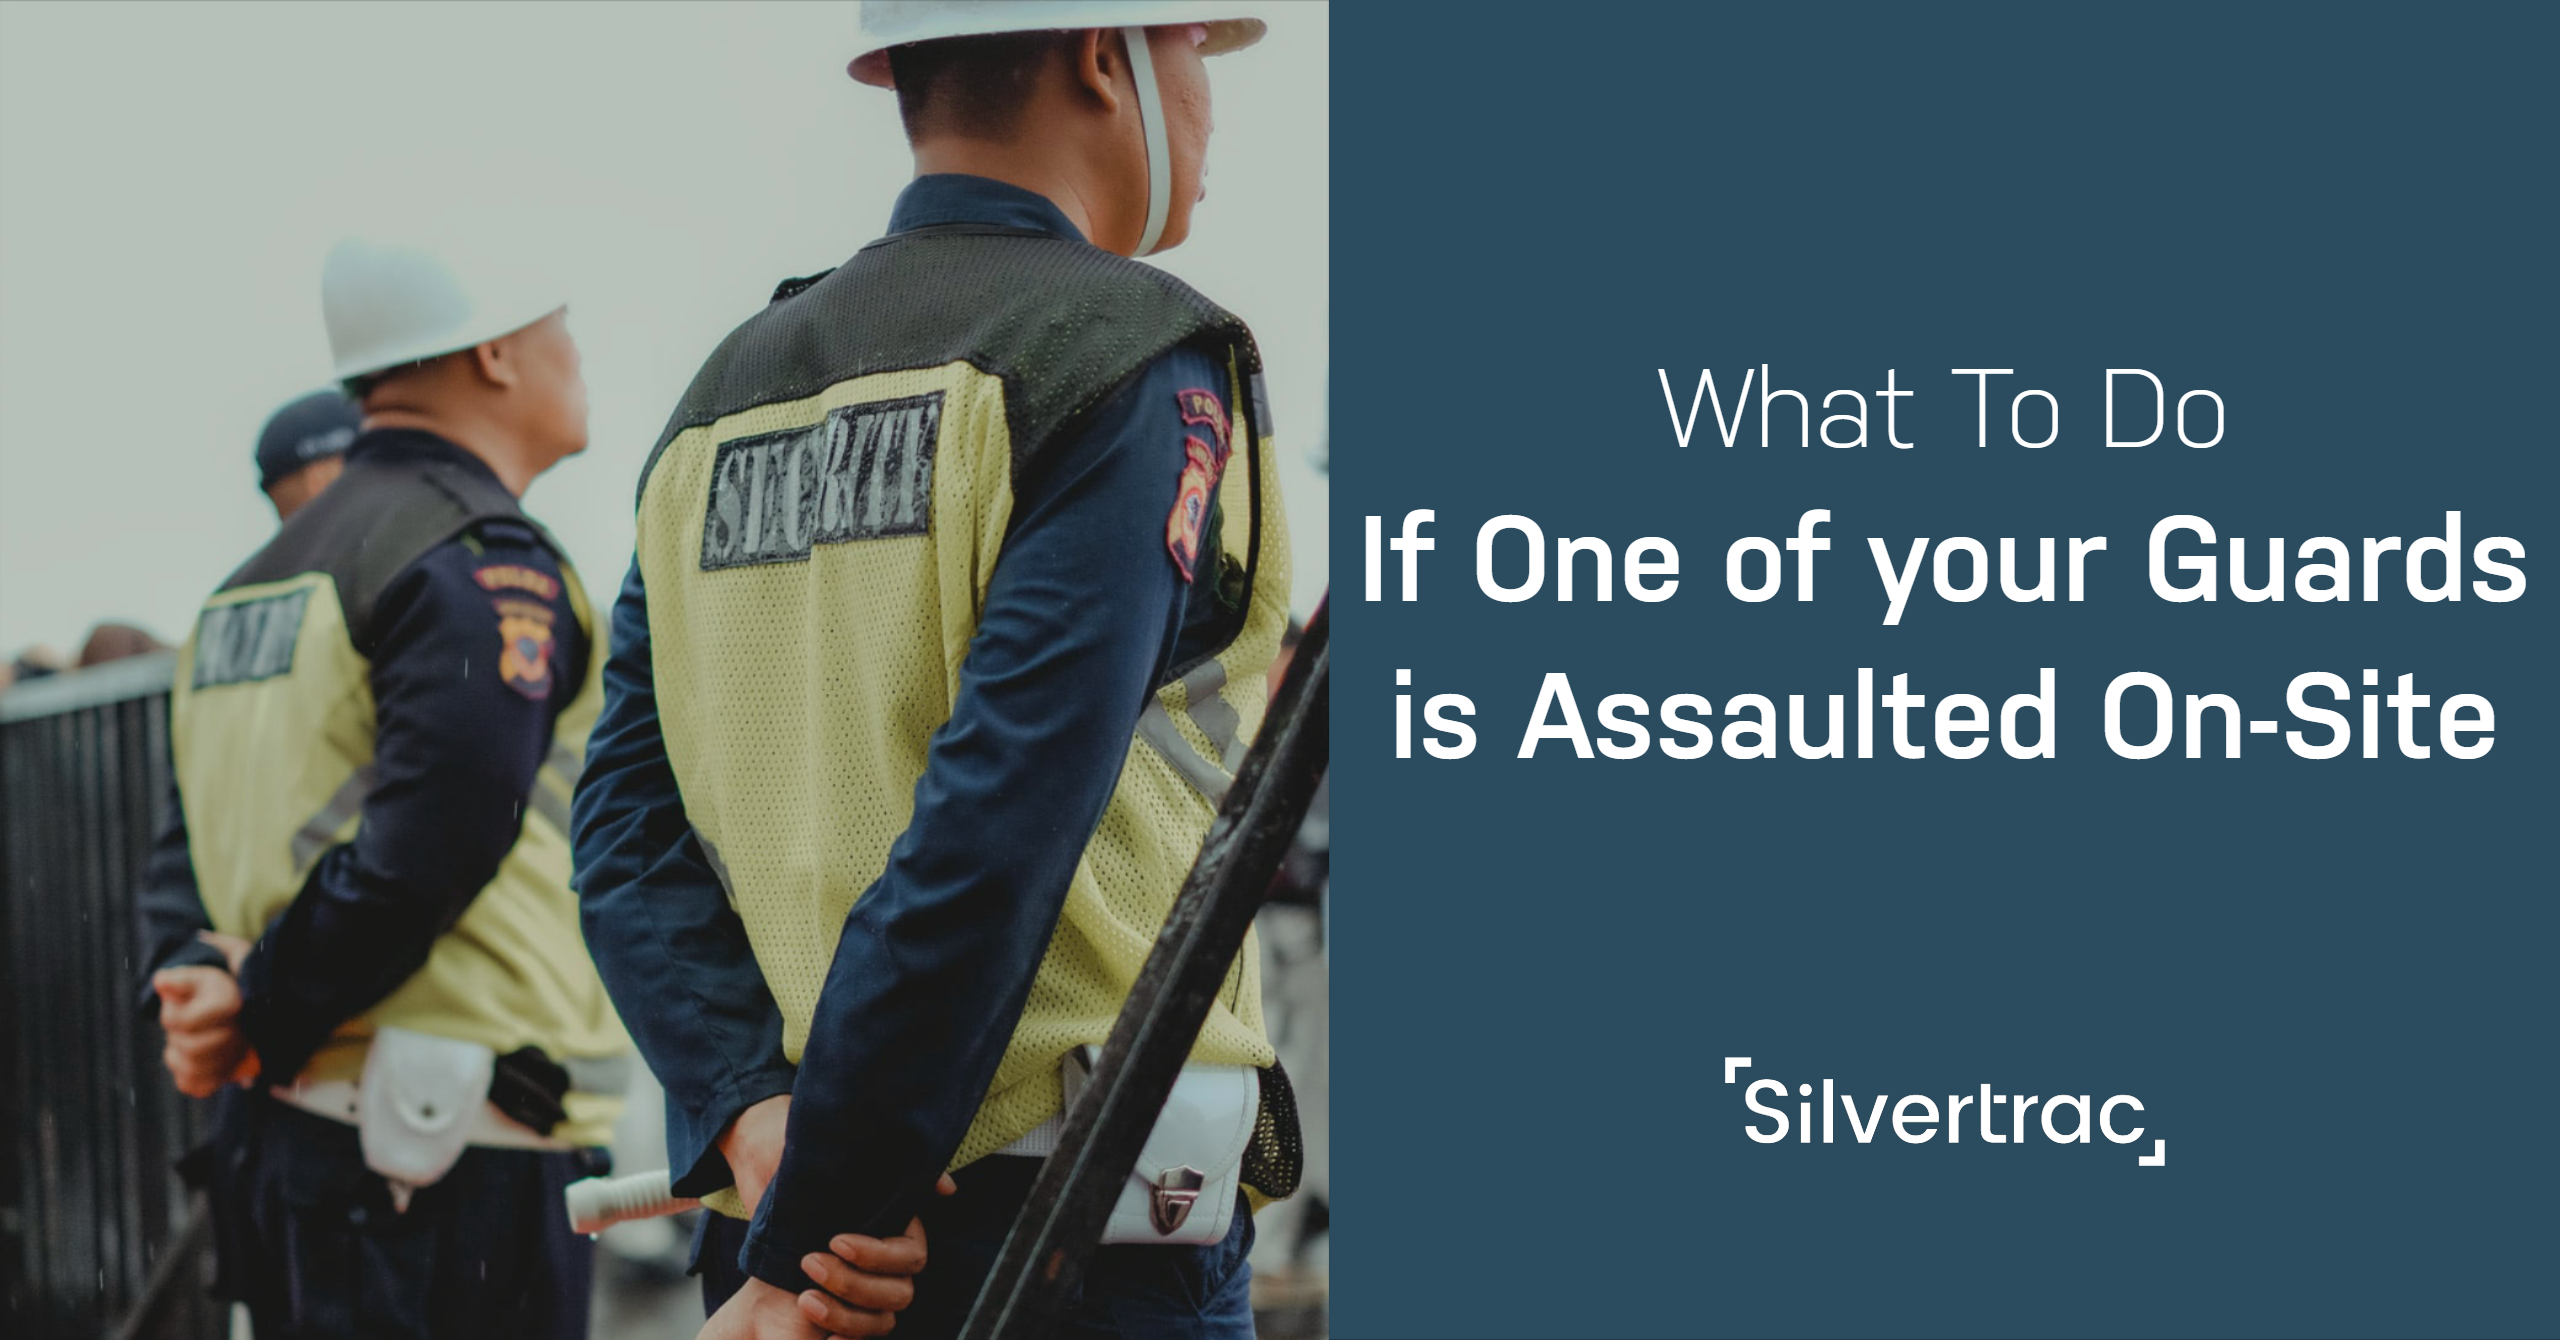 What to Do if Security Guard is Assaulted on Site